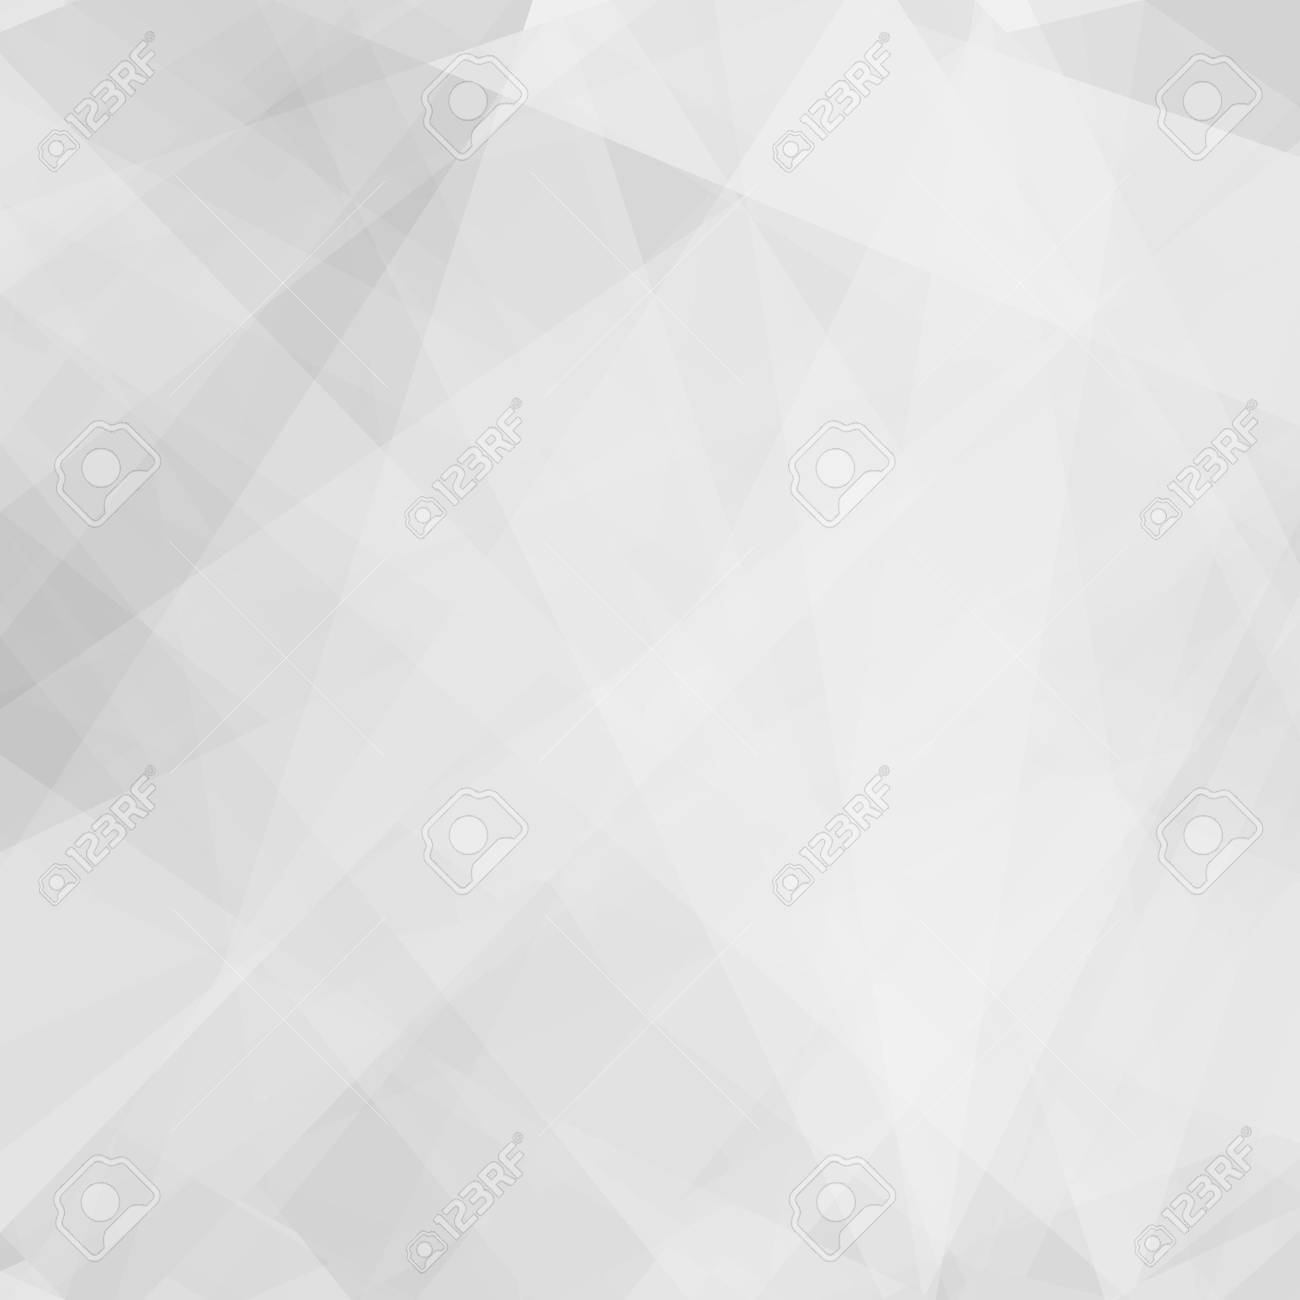 Abstract vector background. - 22481147